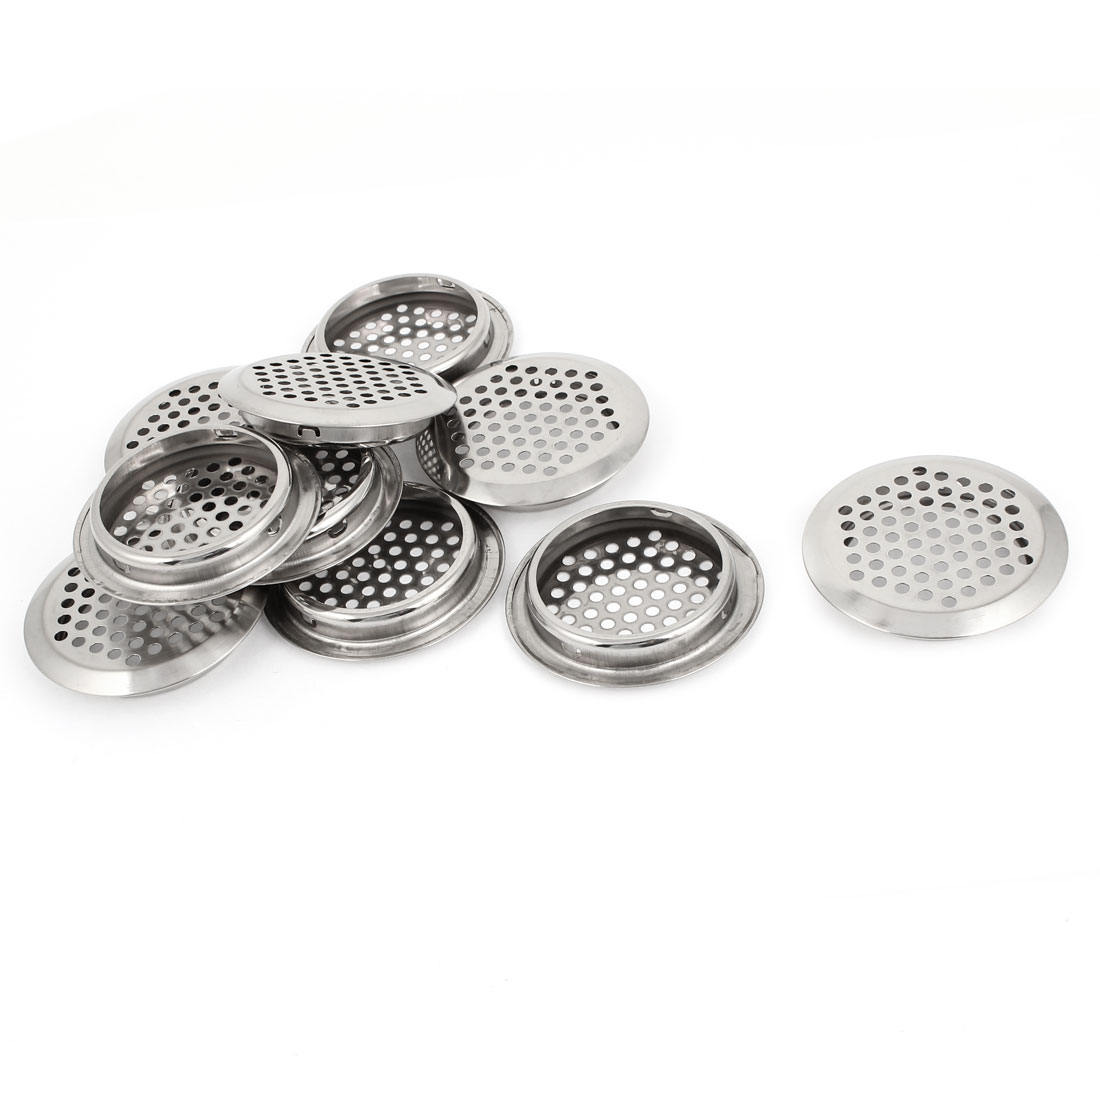 10pcs 6.5cm Dia Water Drain Stopper Disposal Sink Basin Strainer for Bathroom